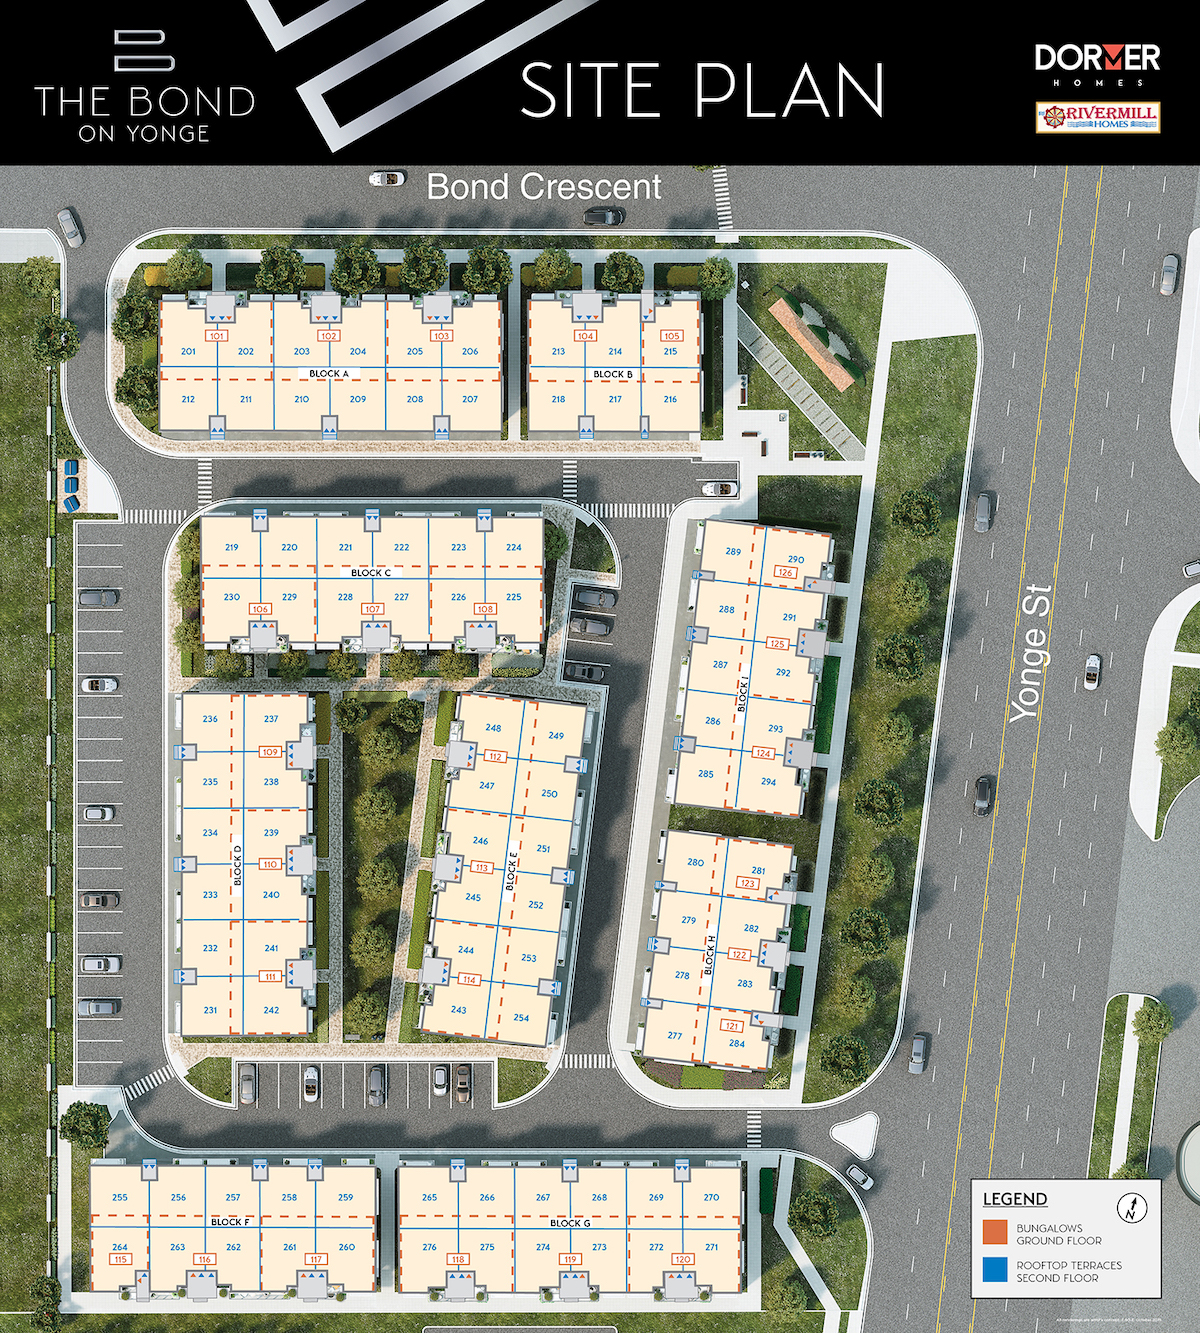 The Bond on Yonge site map with unit labels